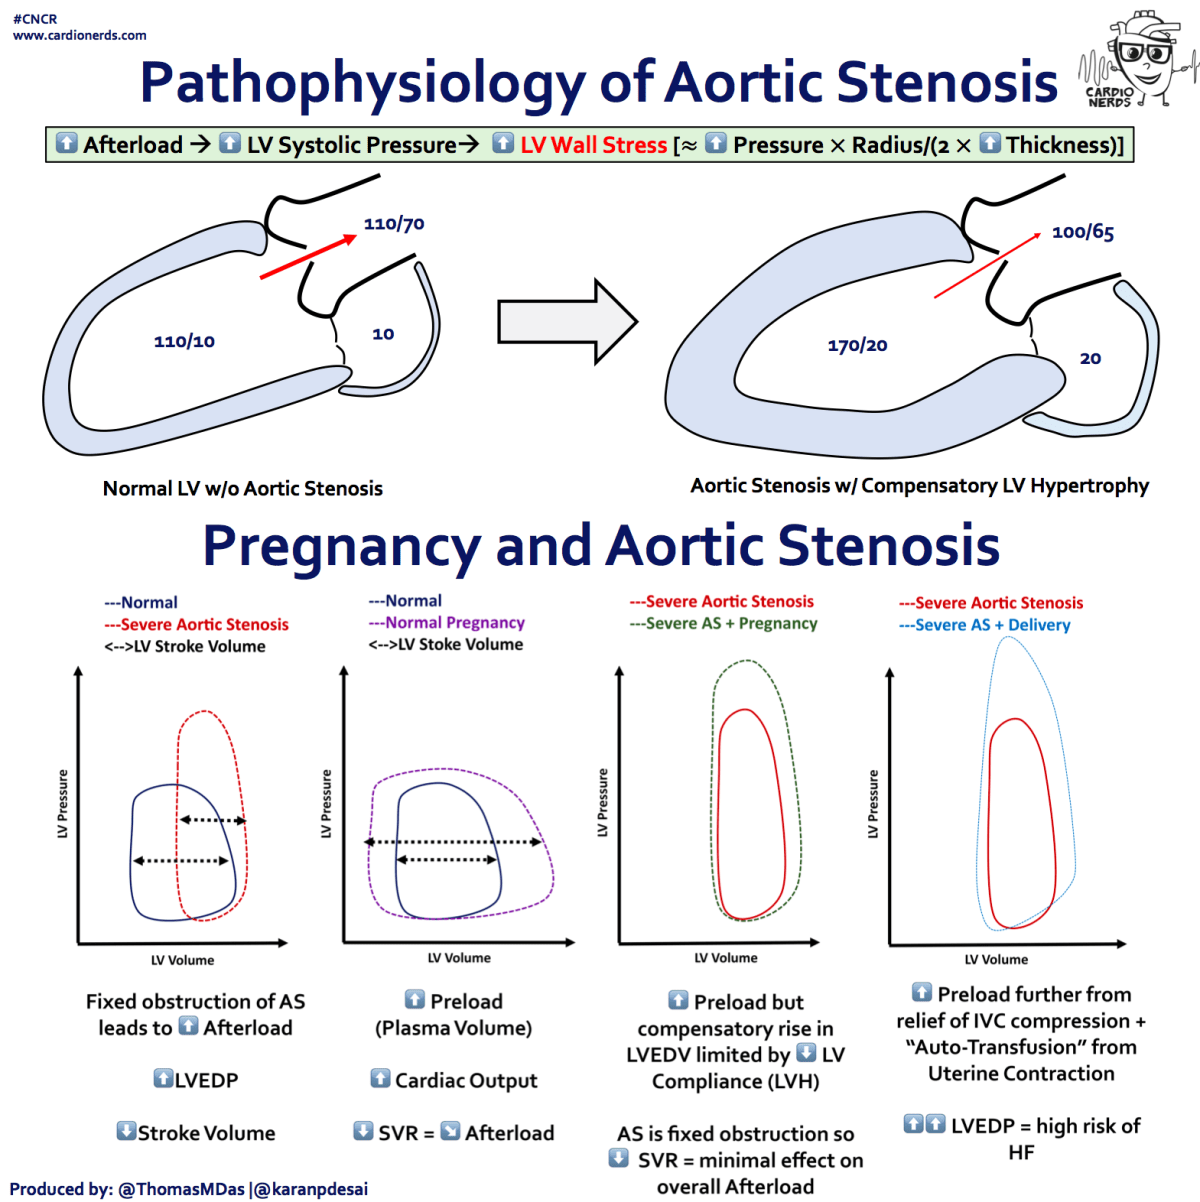 Aortic Stenosis and Pregnancy